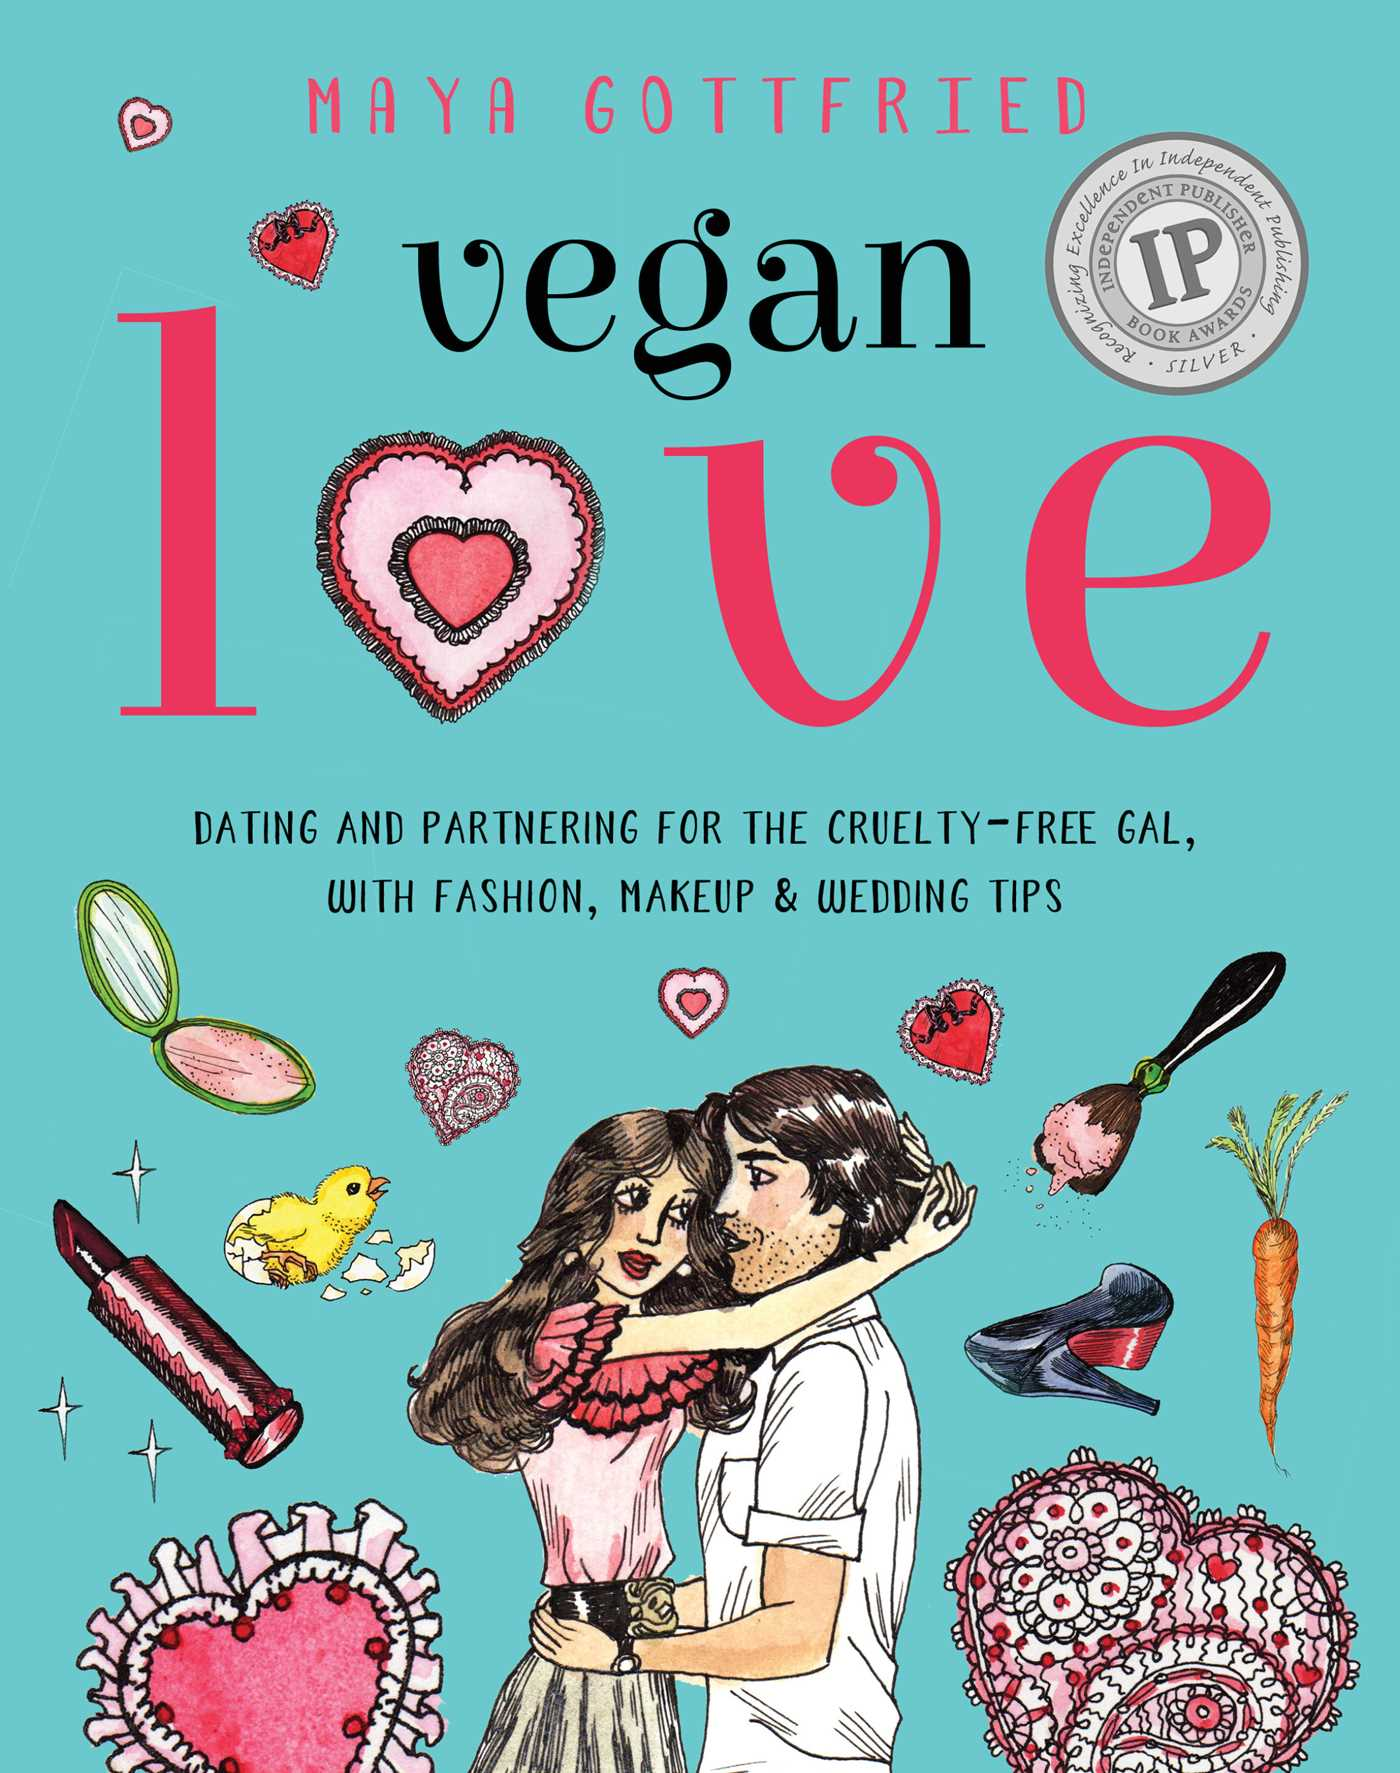 Vegan Love: Dating and Partnering for the Cruelty-Free Gal, with Fashion, Makeup & Wedding Tips, Book by Maya Gottfried (Paperback) | chapters.indigo.ca